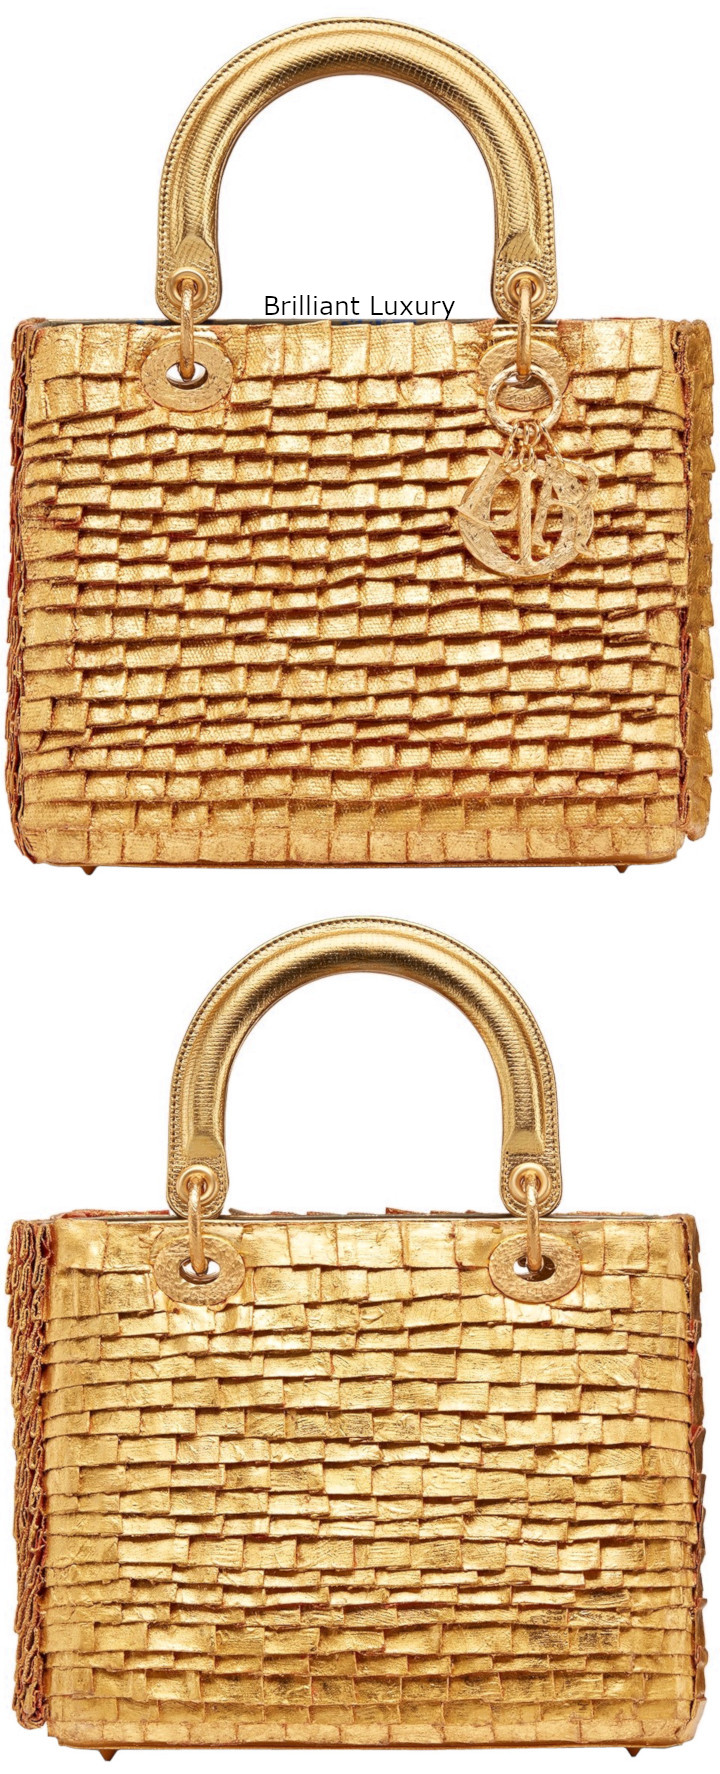 Dior Bag embroidered cotton pieces covered with 24kt gold-hand-hammered and metal charms Designer Olga de Amaral